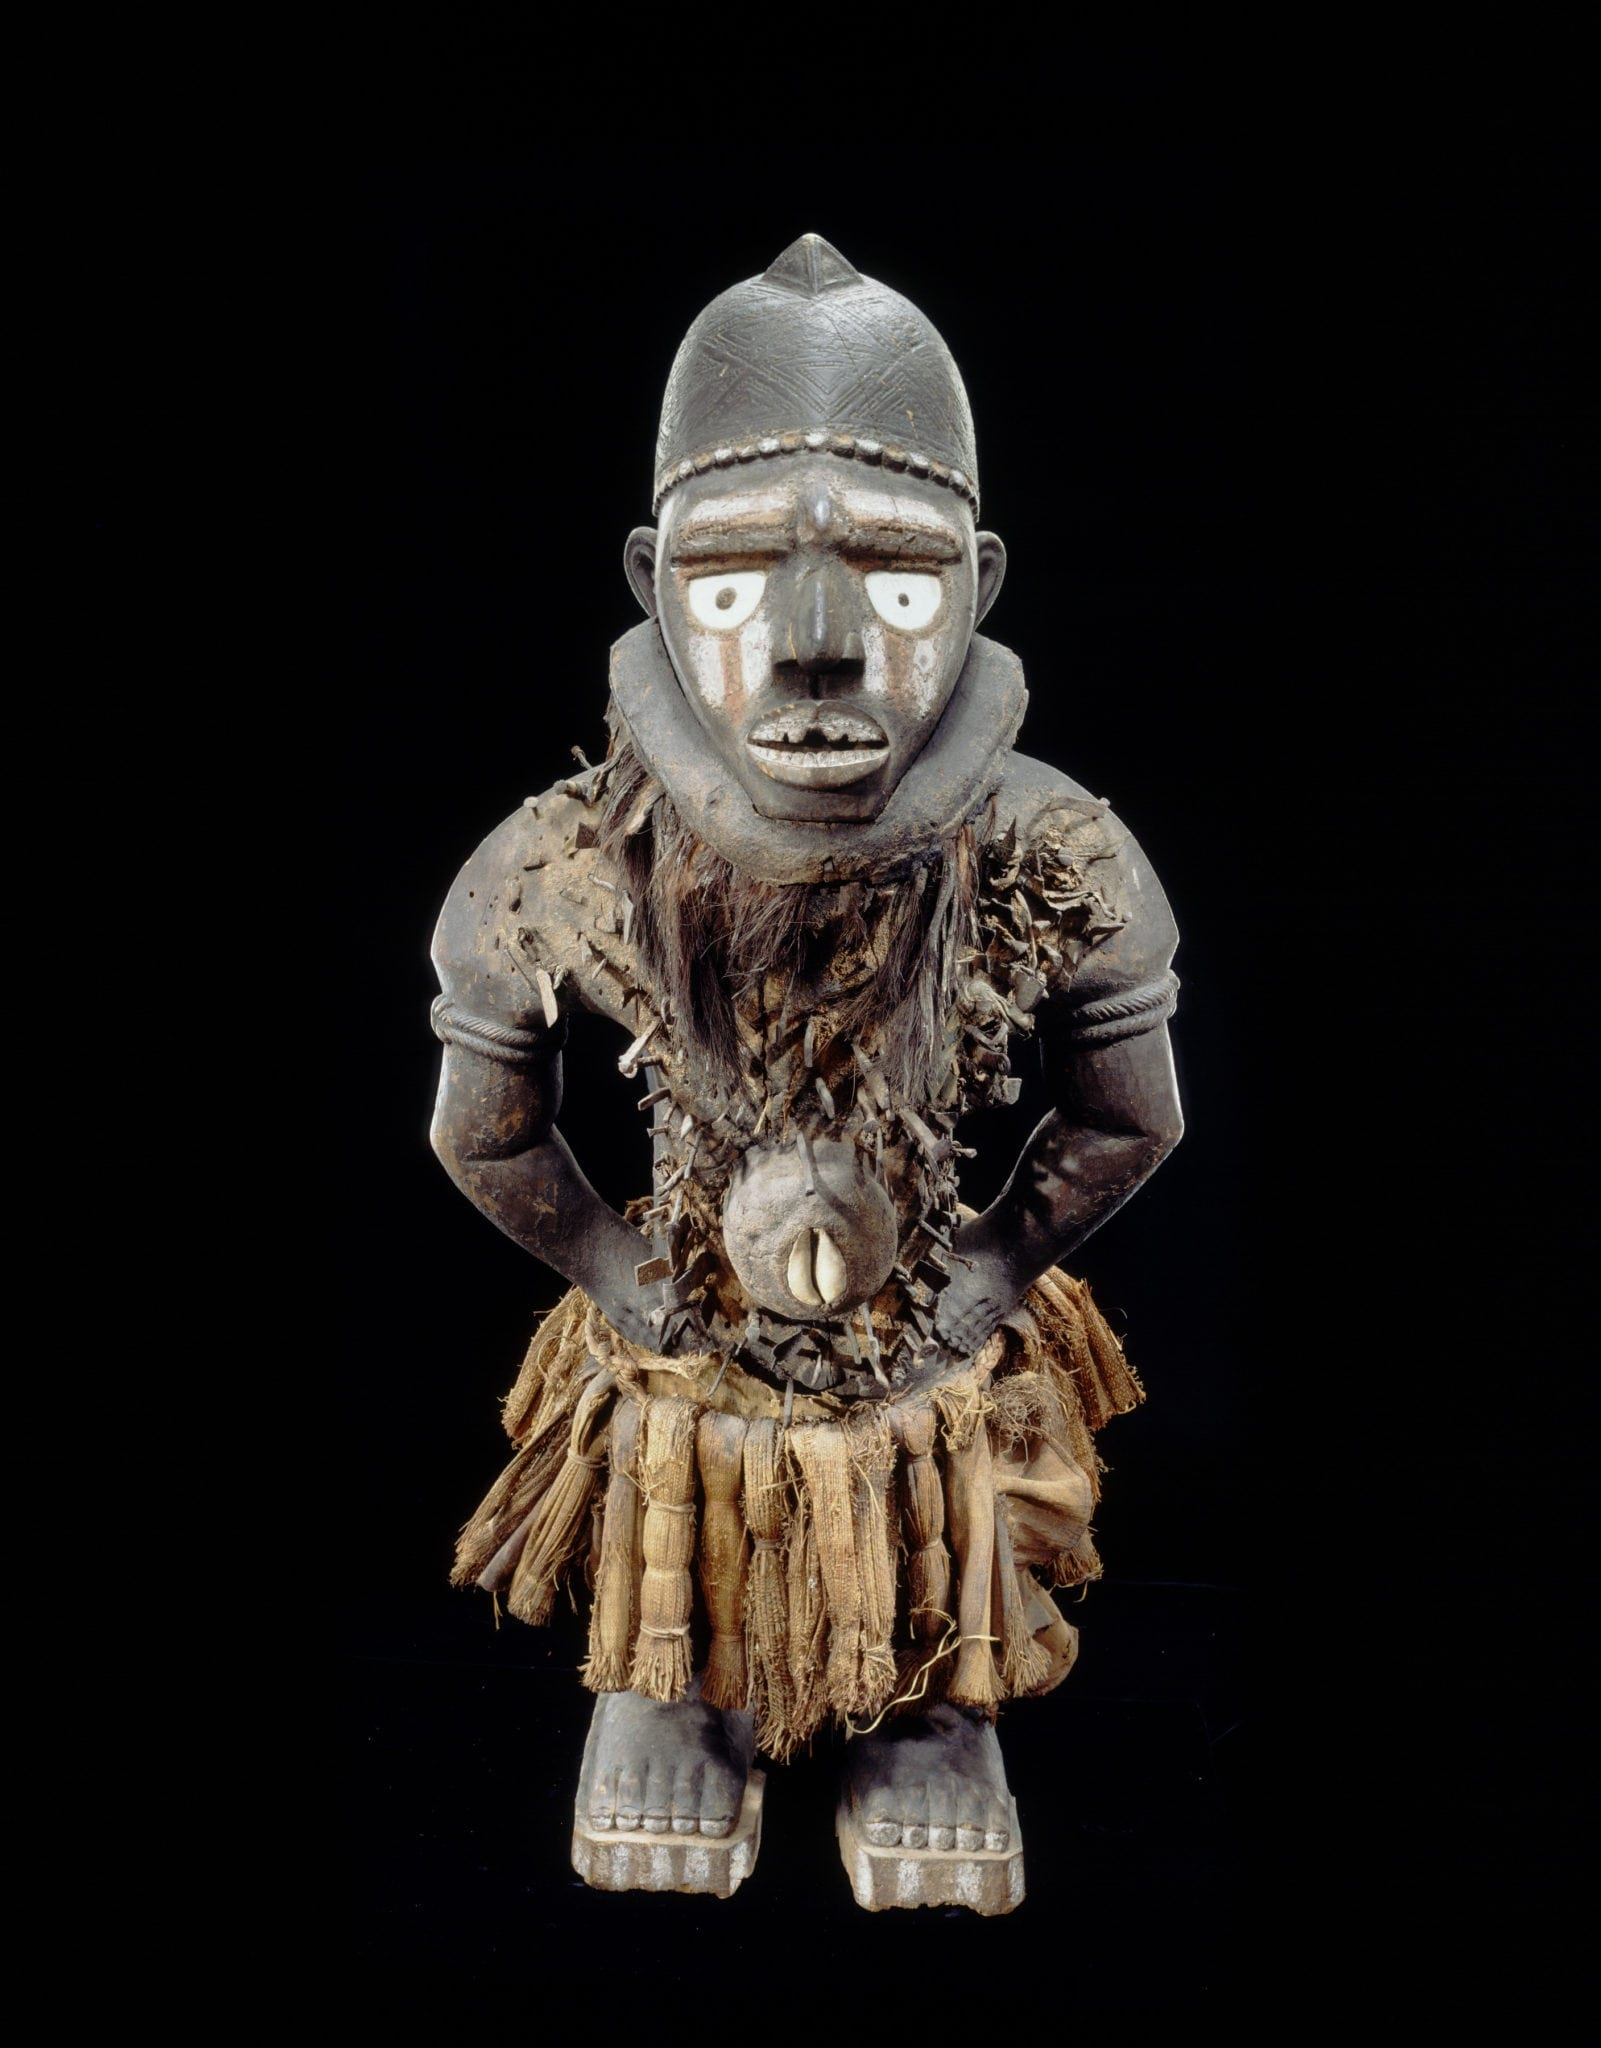 Anthropomorphic power figure, nkisi nkondi,19th century, Yombe peoples, Mayombe, Lower Congo, DRC, Collection RMCA Tervuren.(Photo by R. Asselberghs, RMCA Tervuren ©